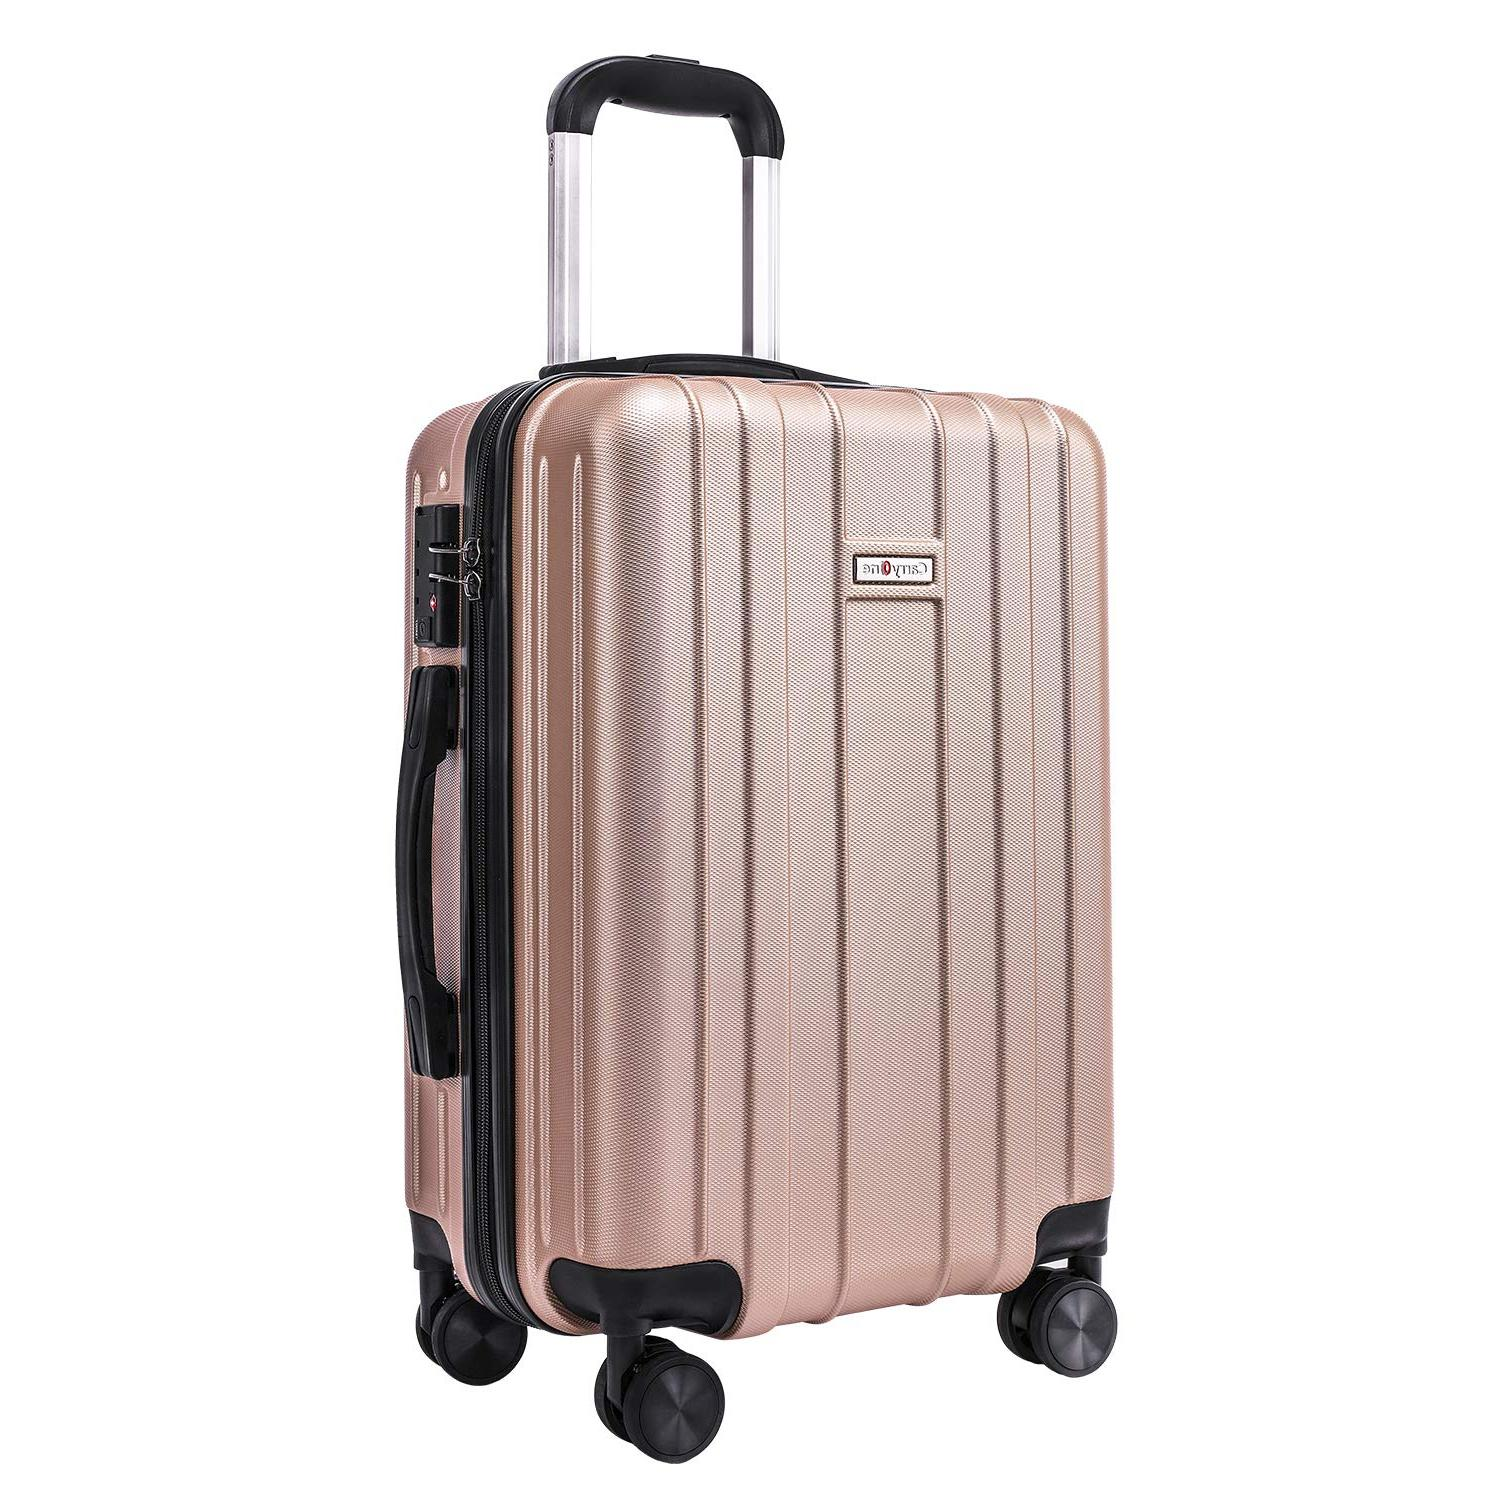 20in carry on luggage suitcase built in